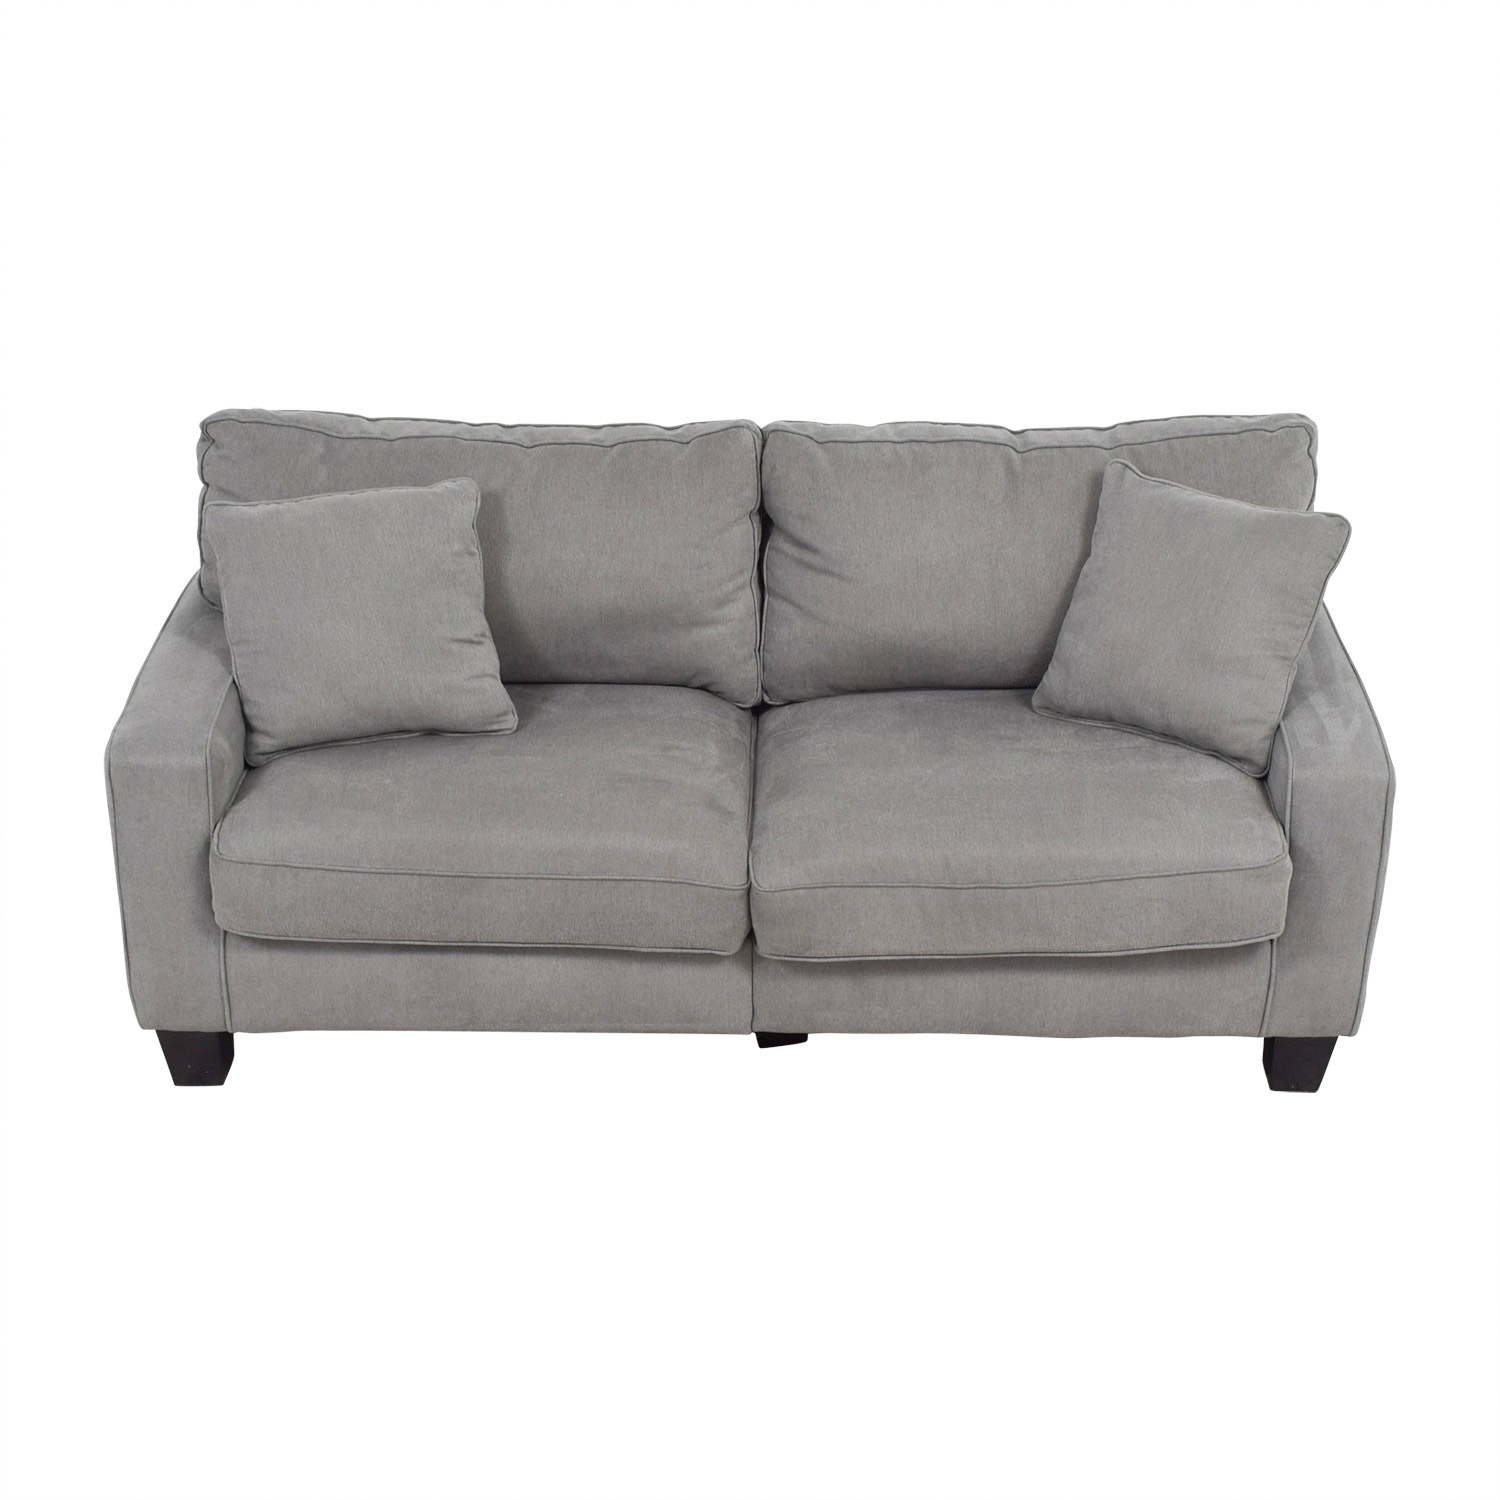 buy Serta Serta Grey Loveseat with Toss Pillows online